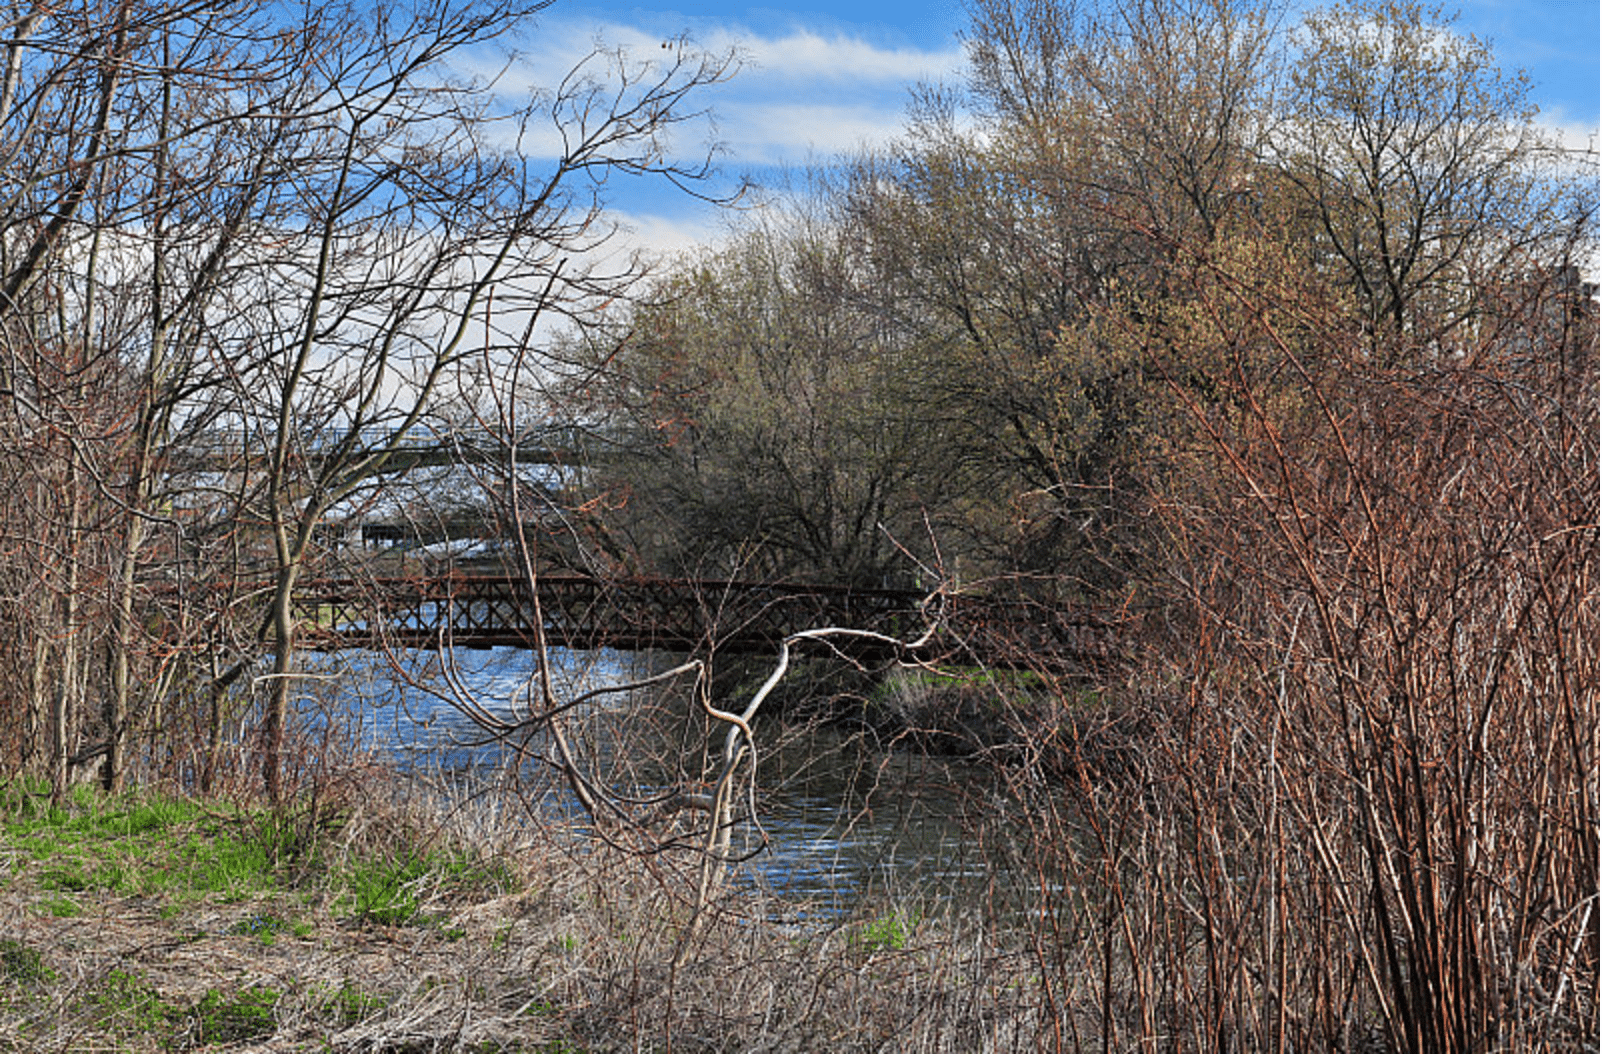 The Lower Don Valley in the spring. Photo by Tania A. in the Torontoist Flickr Pool.